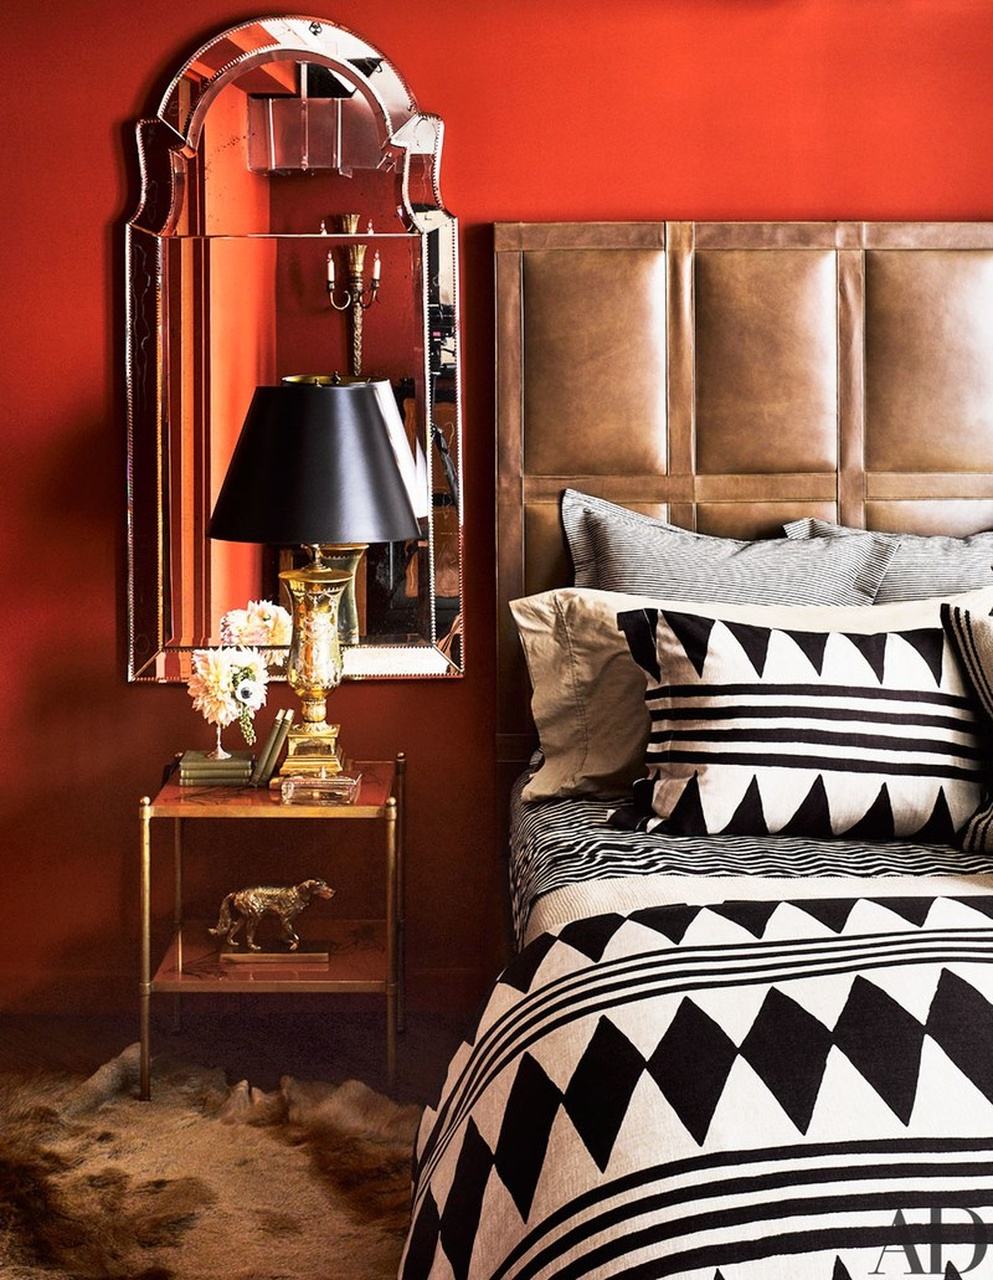 Master Bedrooms 20 Best Master Bedrooms of 2016 by Architectural Digest 10 Best Master Bedrooms of 2016 Ken Fulk Manhattan loft Easy Resize